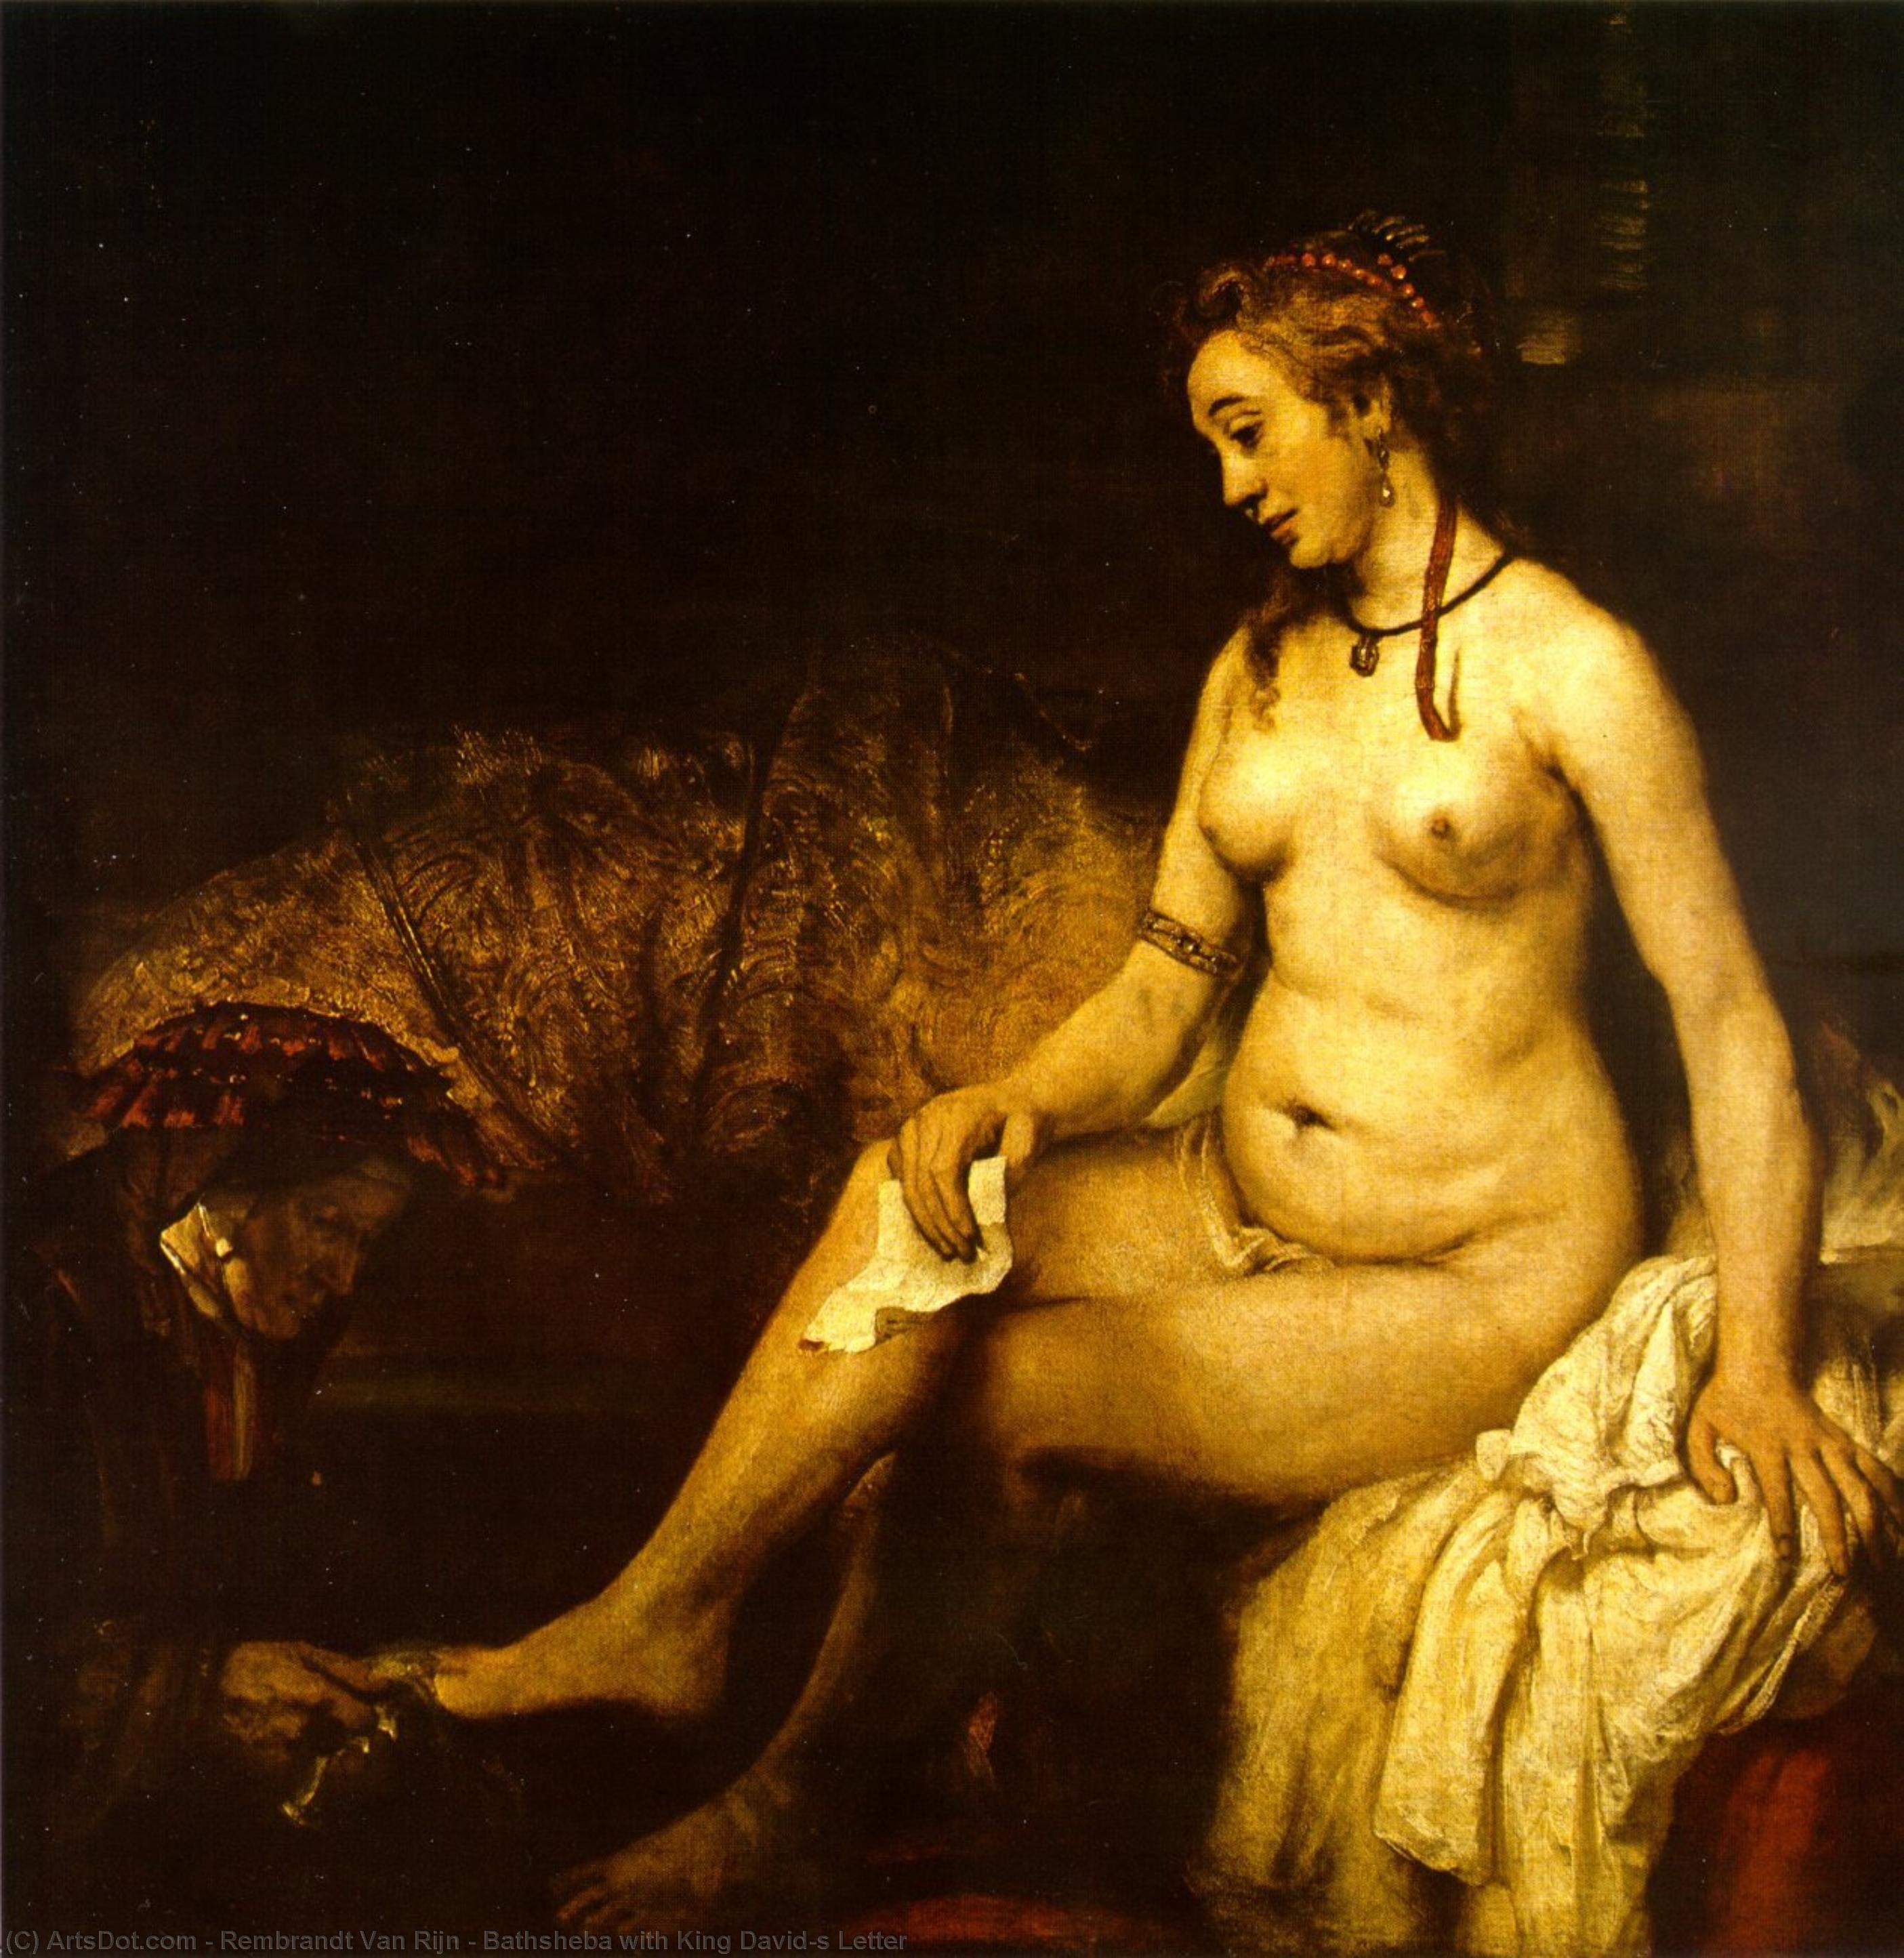 Bathsheba with King David`s Letter by Rembrandt Van Rijn (1606-1669, Netherlands) | Museum Art Reproductions Rembrandt Van Rijn | ArtsDot.com